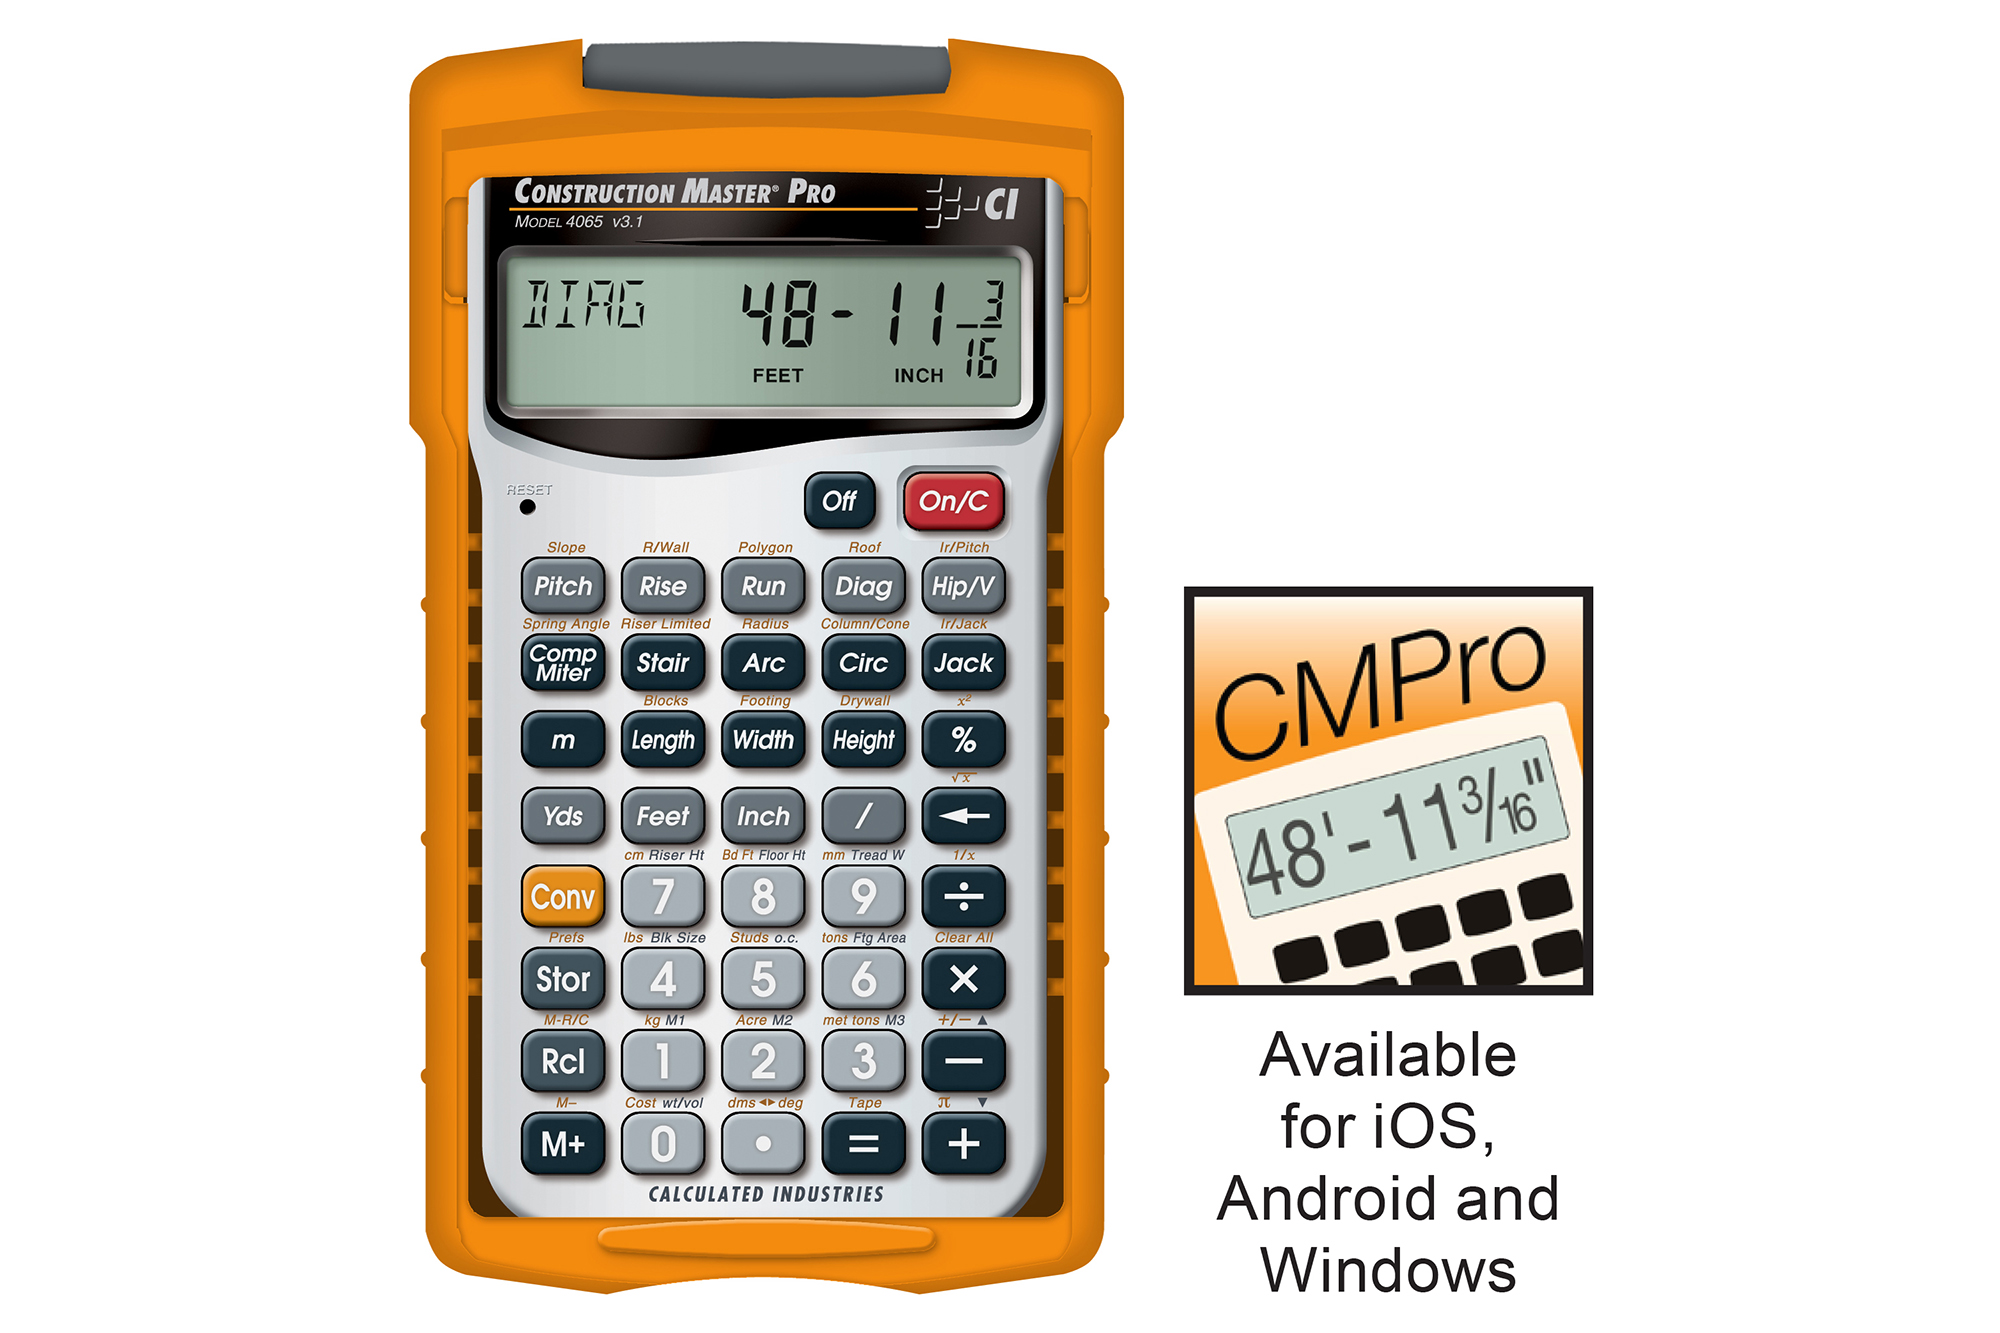 construction master pro advanced construction math calculator for